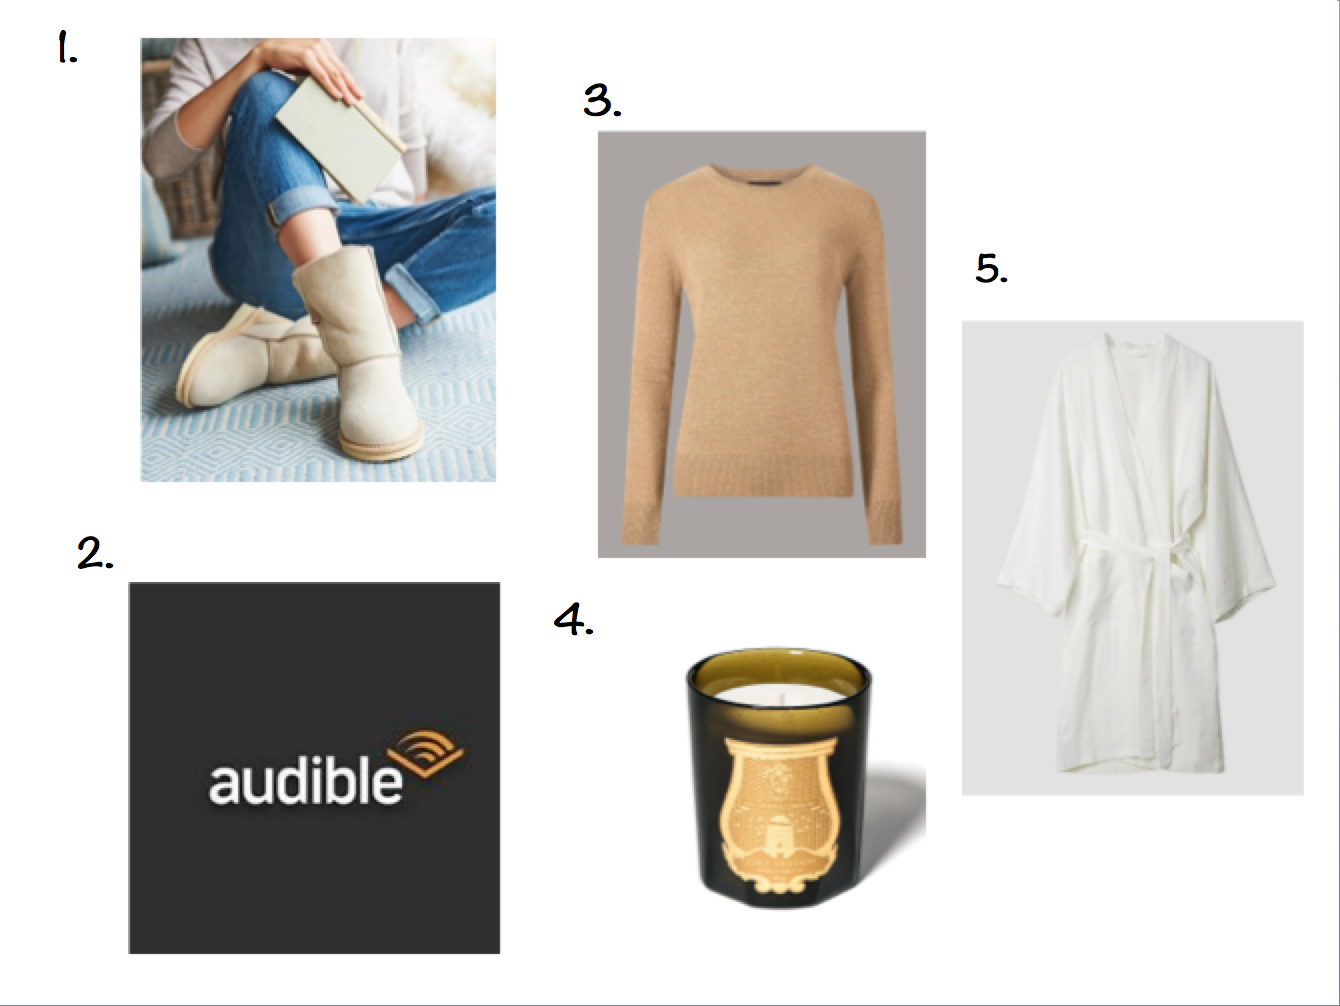 Mothers day gift guide - The Grown Up Edit.png